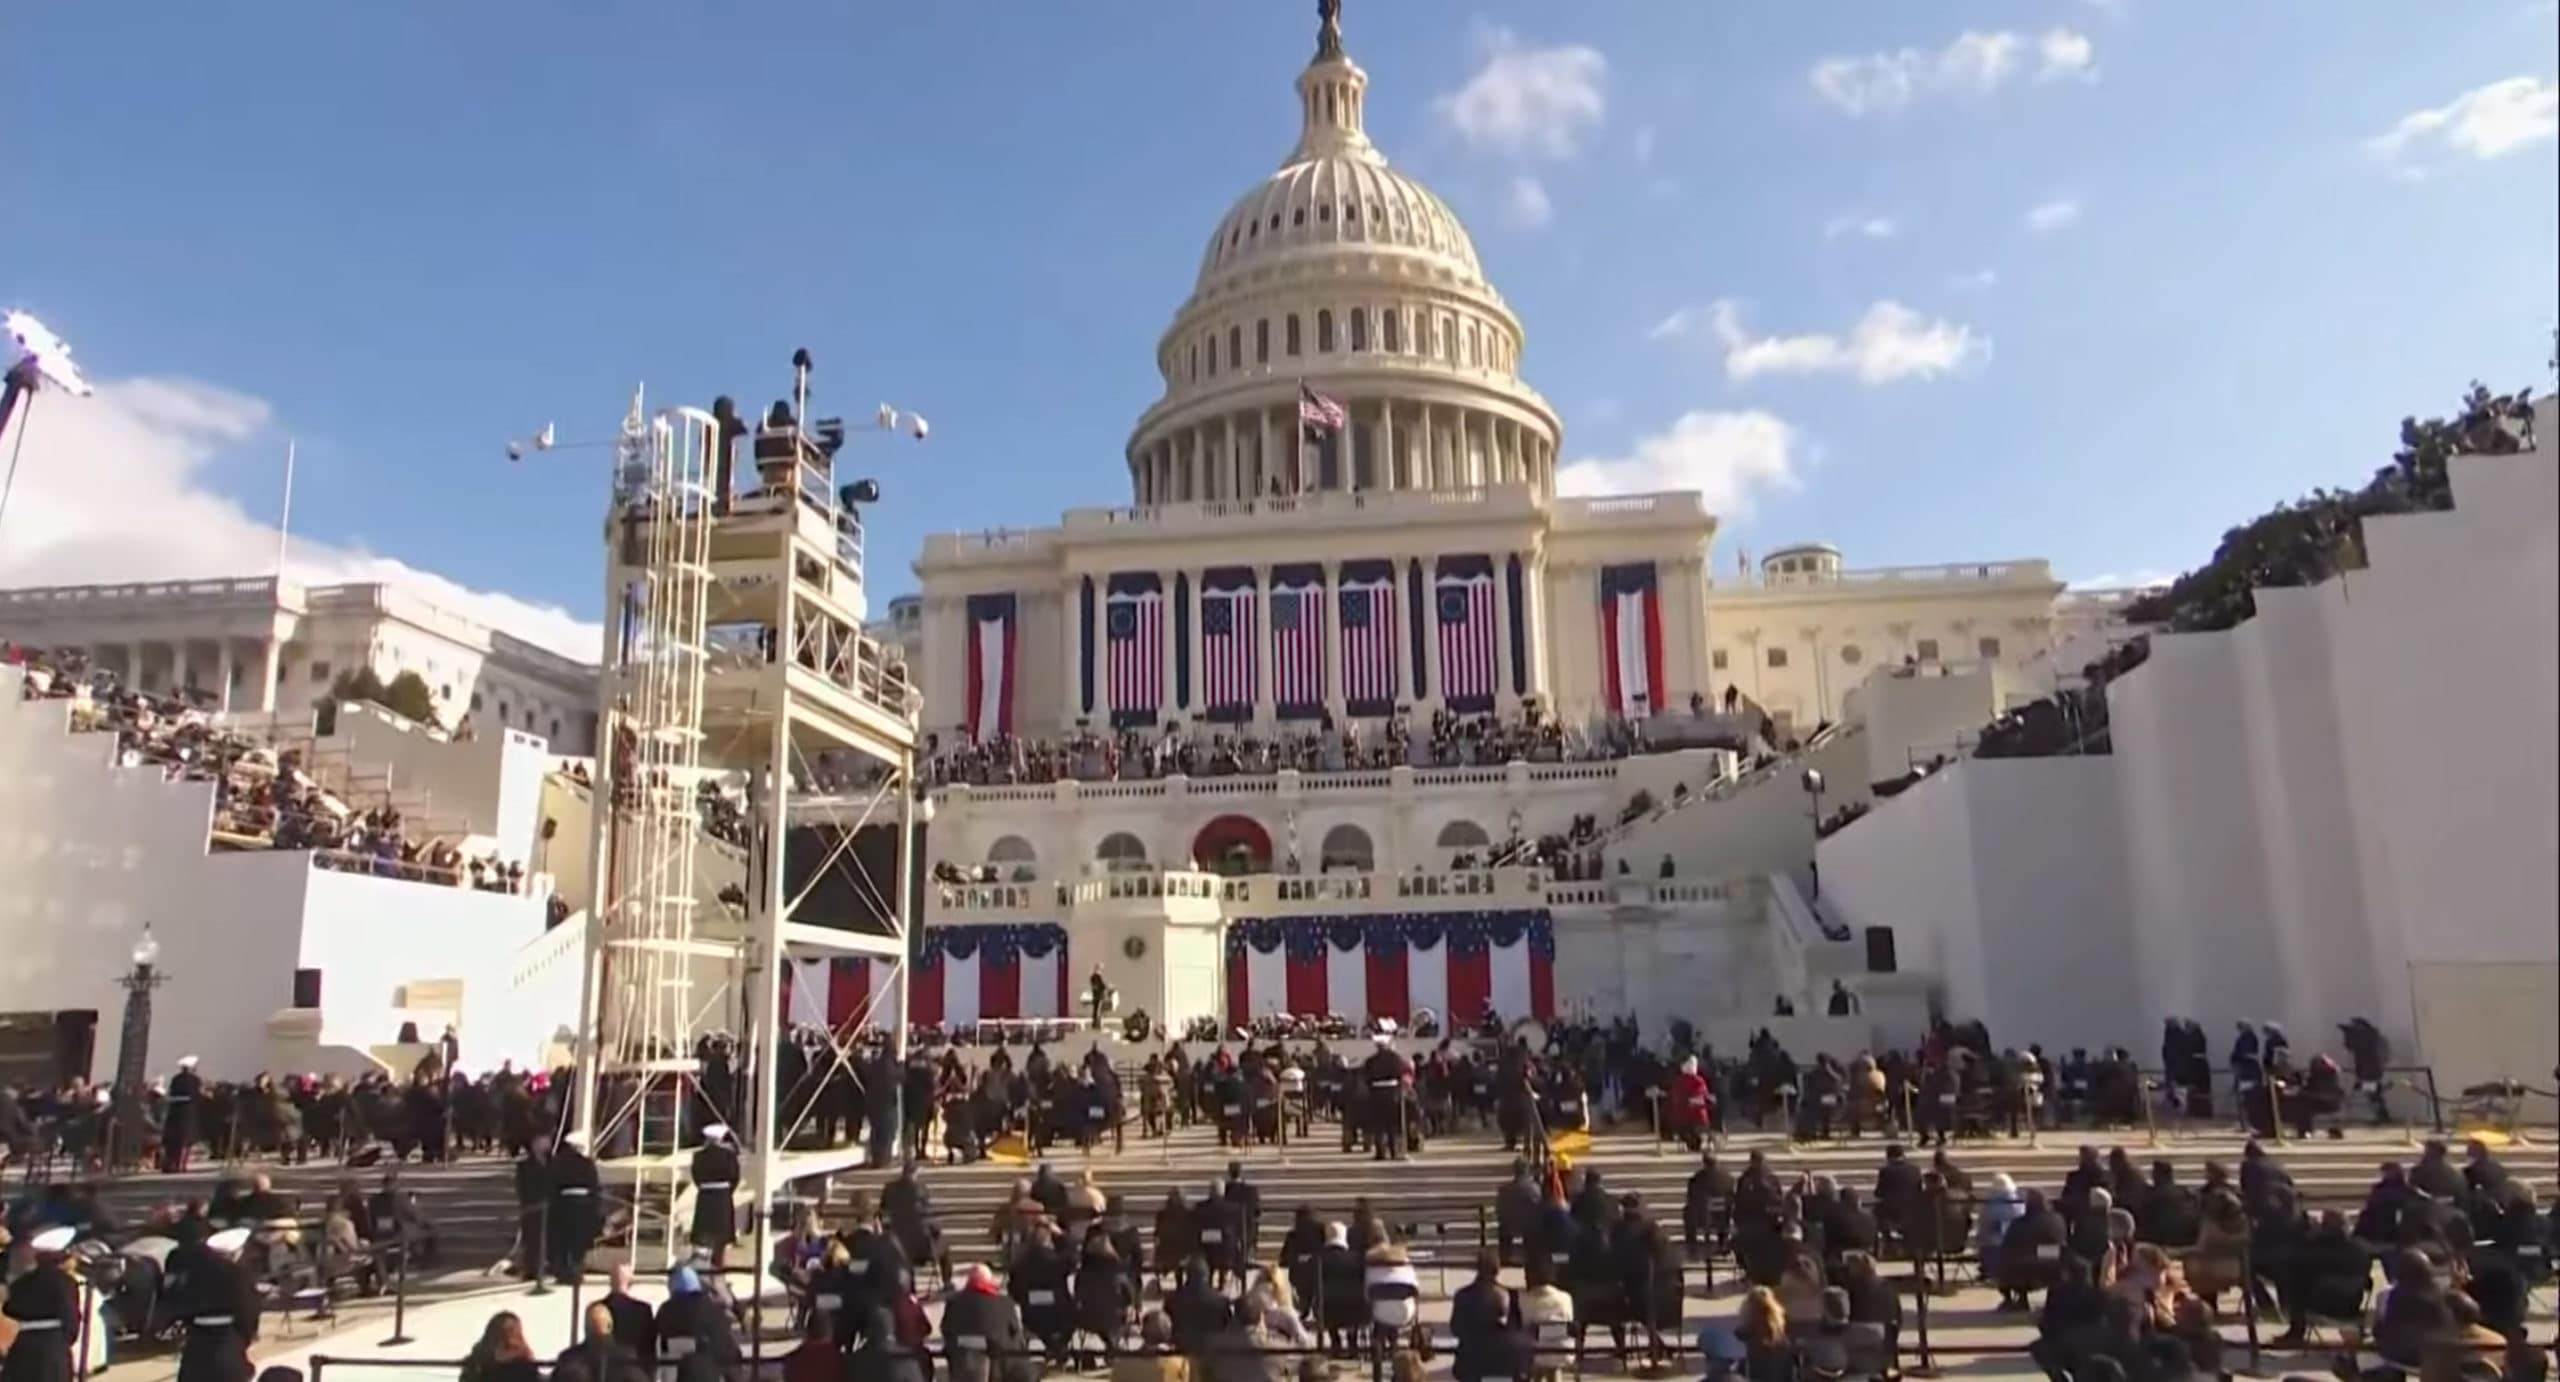 Roy and Kim Show Inauguration Day Edition: The US Capitol building during the Inauguration of President Joe Biden